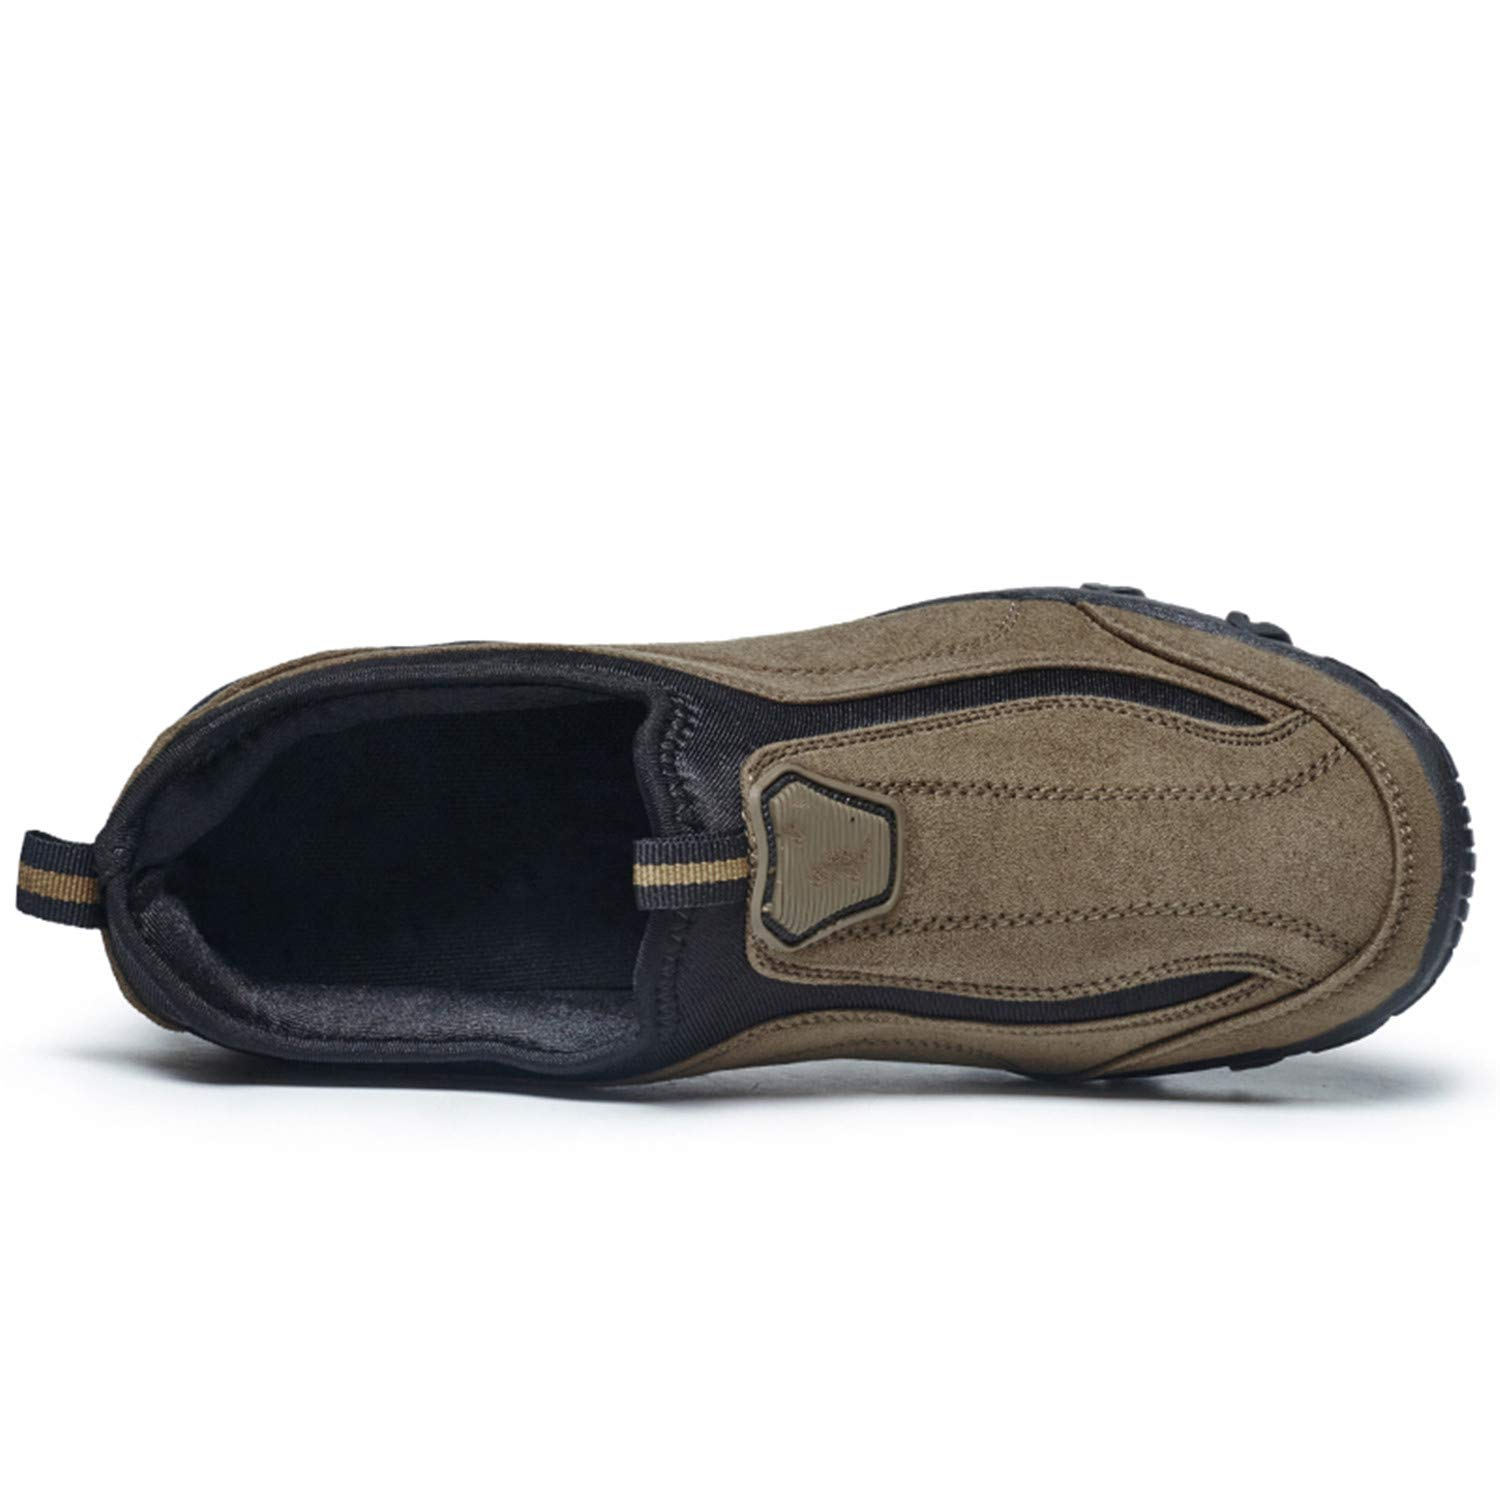 Sonjer Suede Leather Mens Shoes Casual Outdoor Slip On Oxfords Durable Trek Shoes for Men Walking Shoes